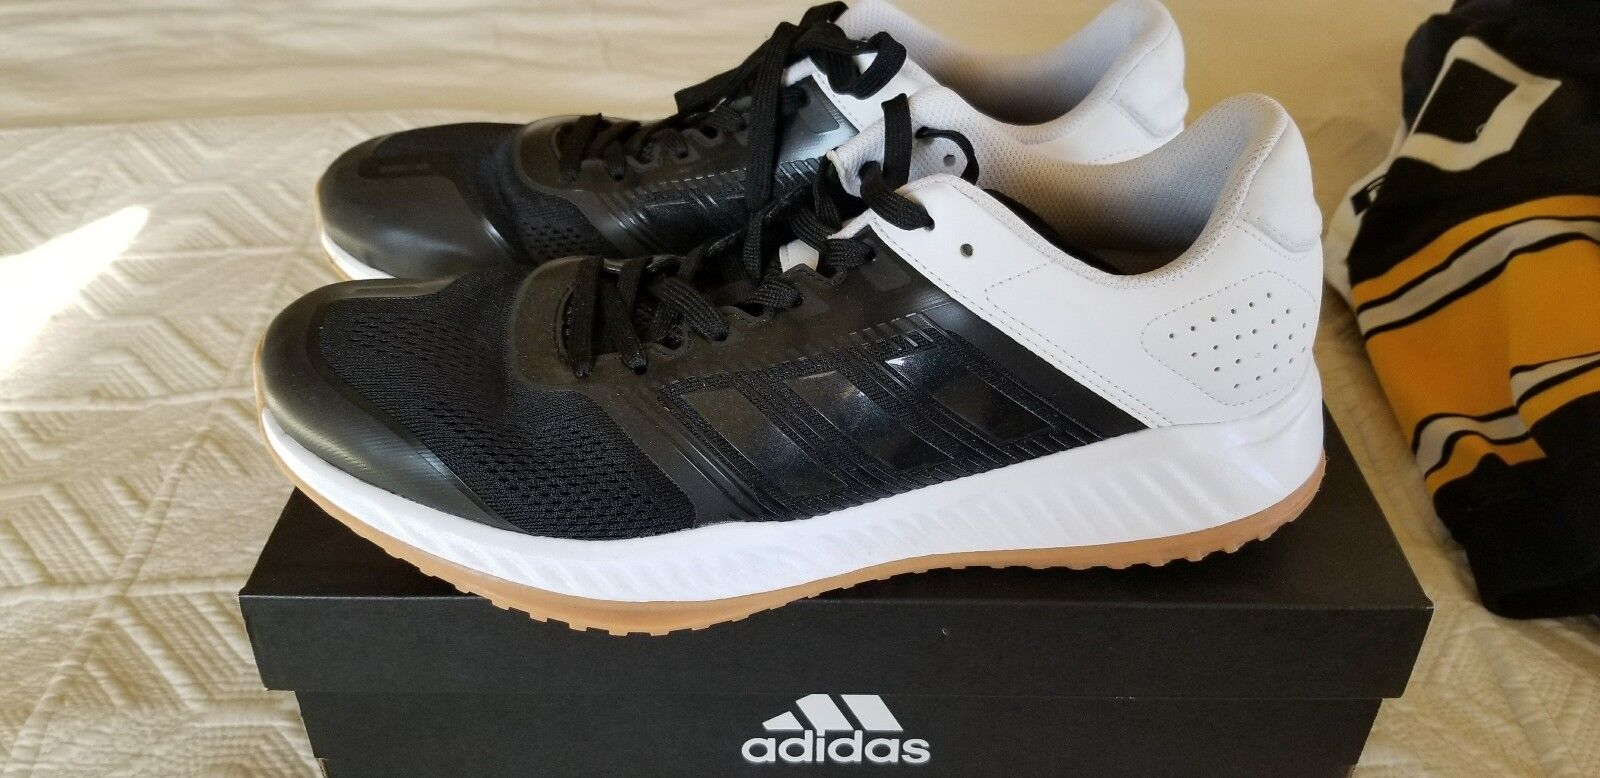 Adidas ZG M Sneakers Running Men's 10.5 Black White Wild casual shoes